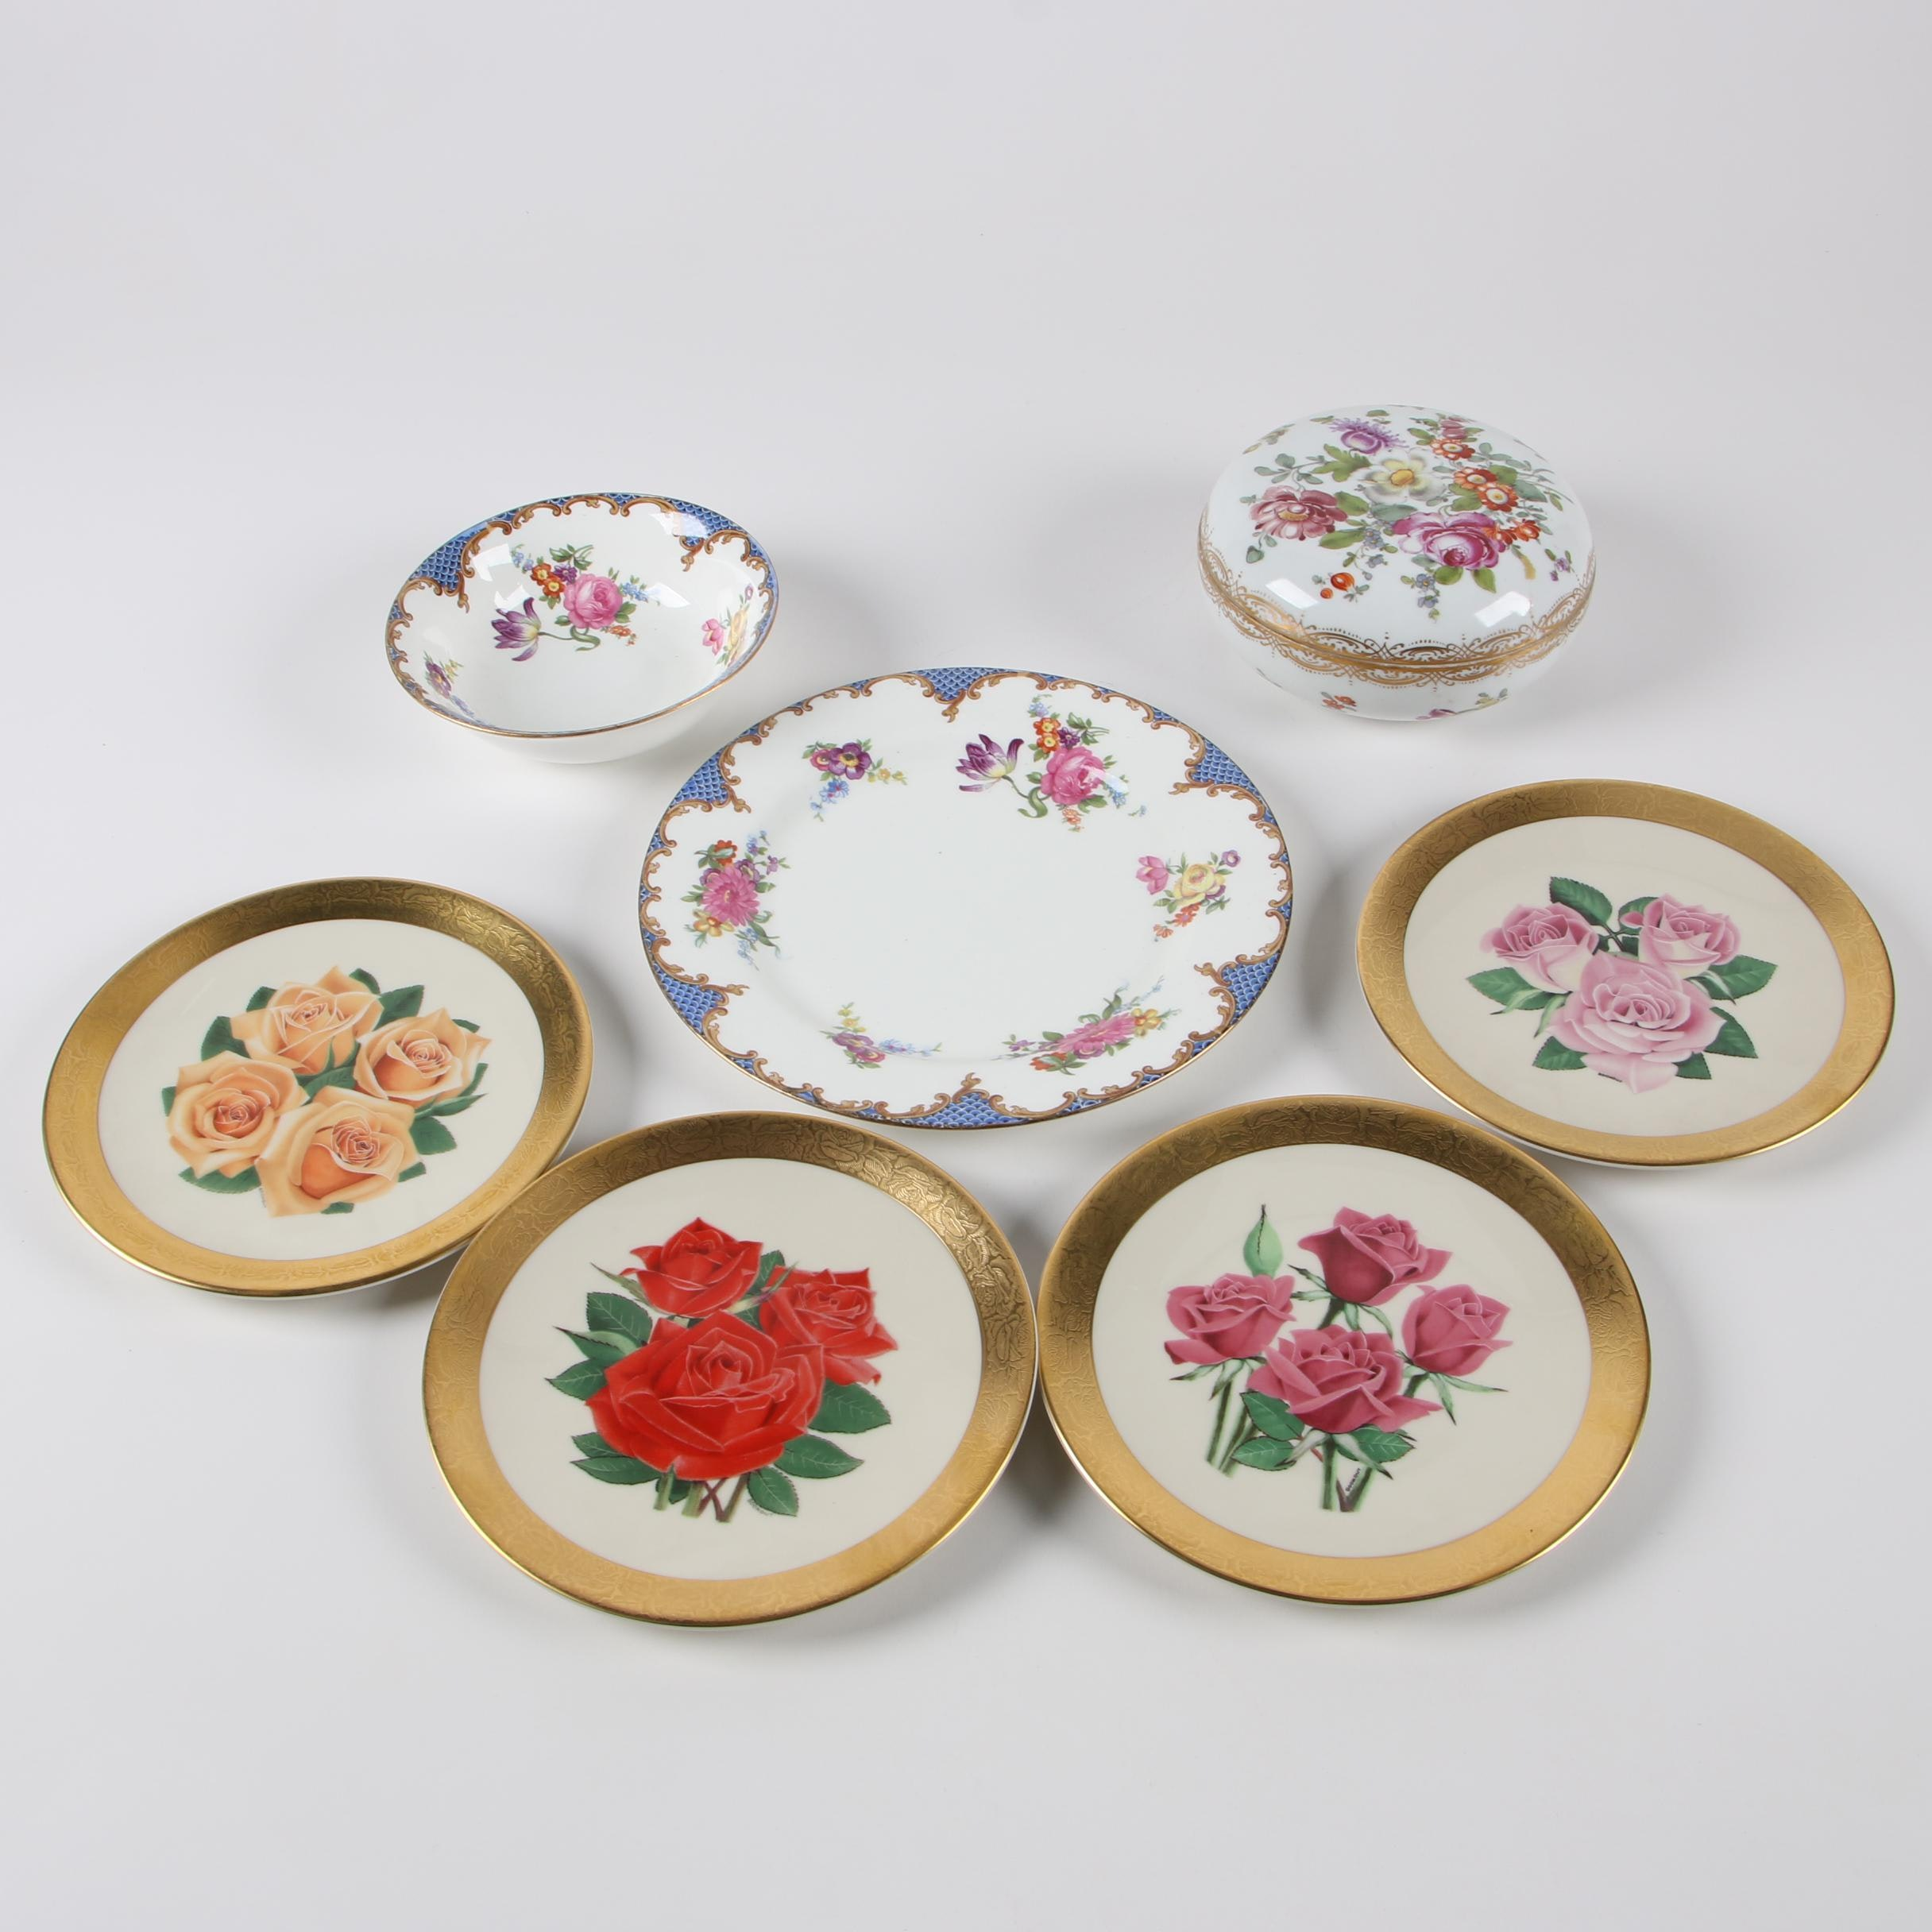 American Rose Society Collectors' Plates with European Porcelain Serveware